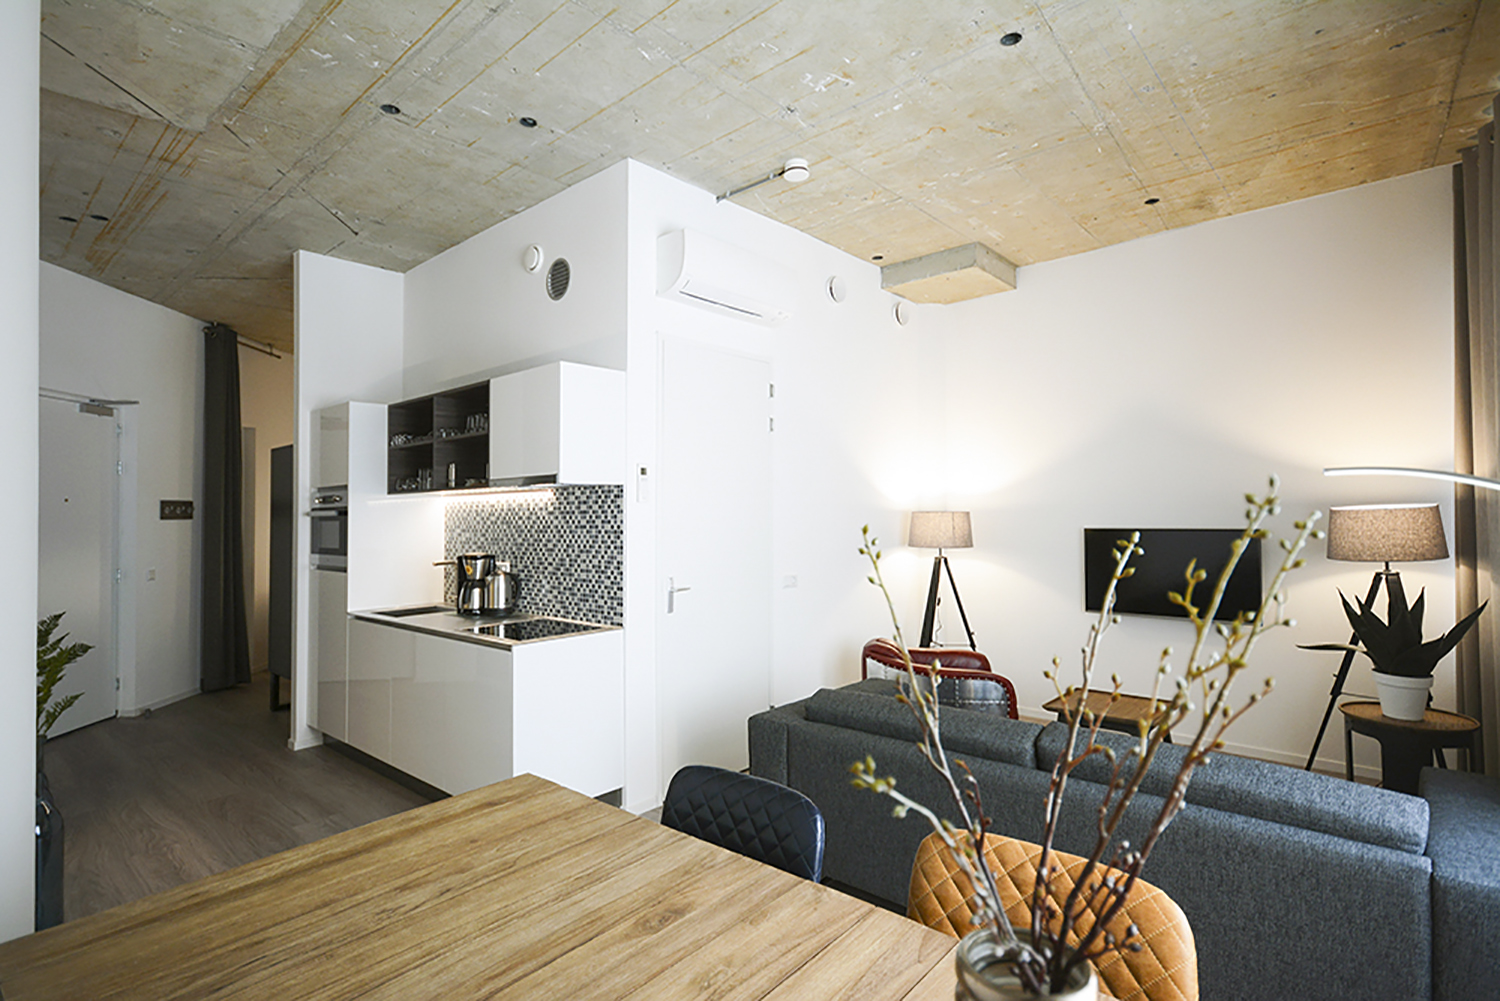 Wallstay Eindhoven woonkamer 25